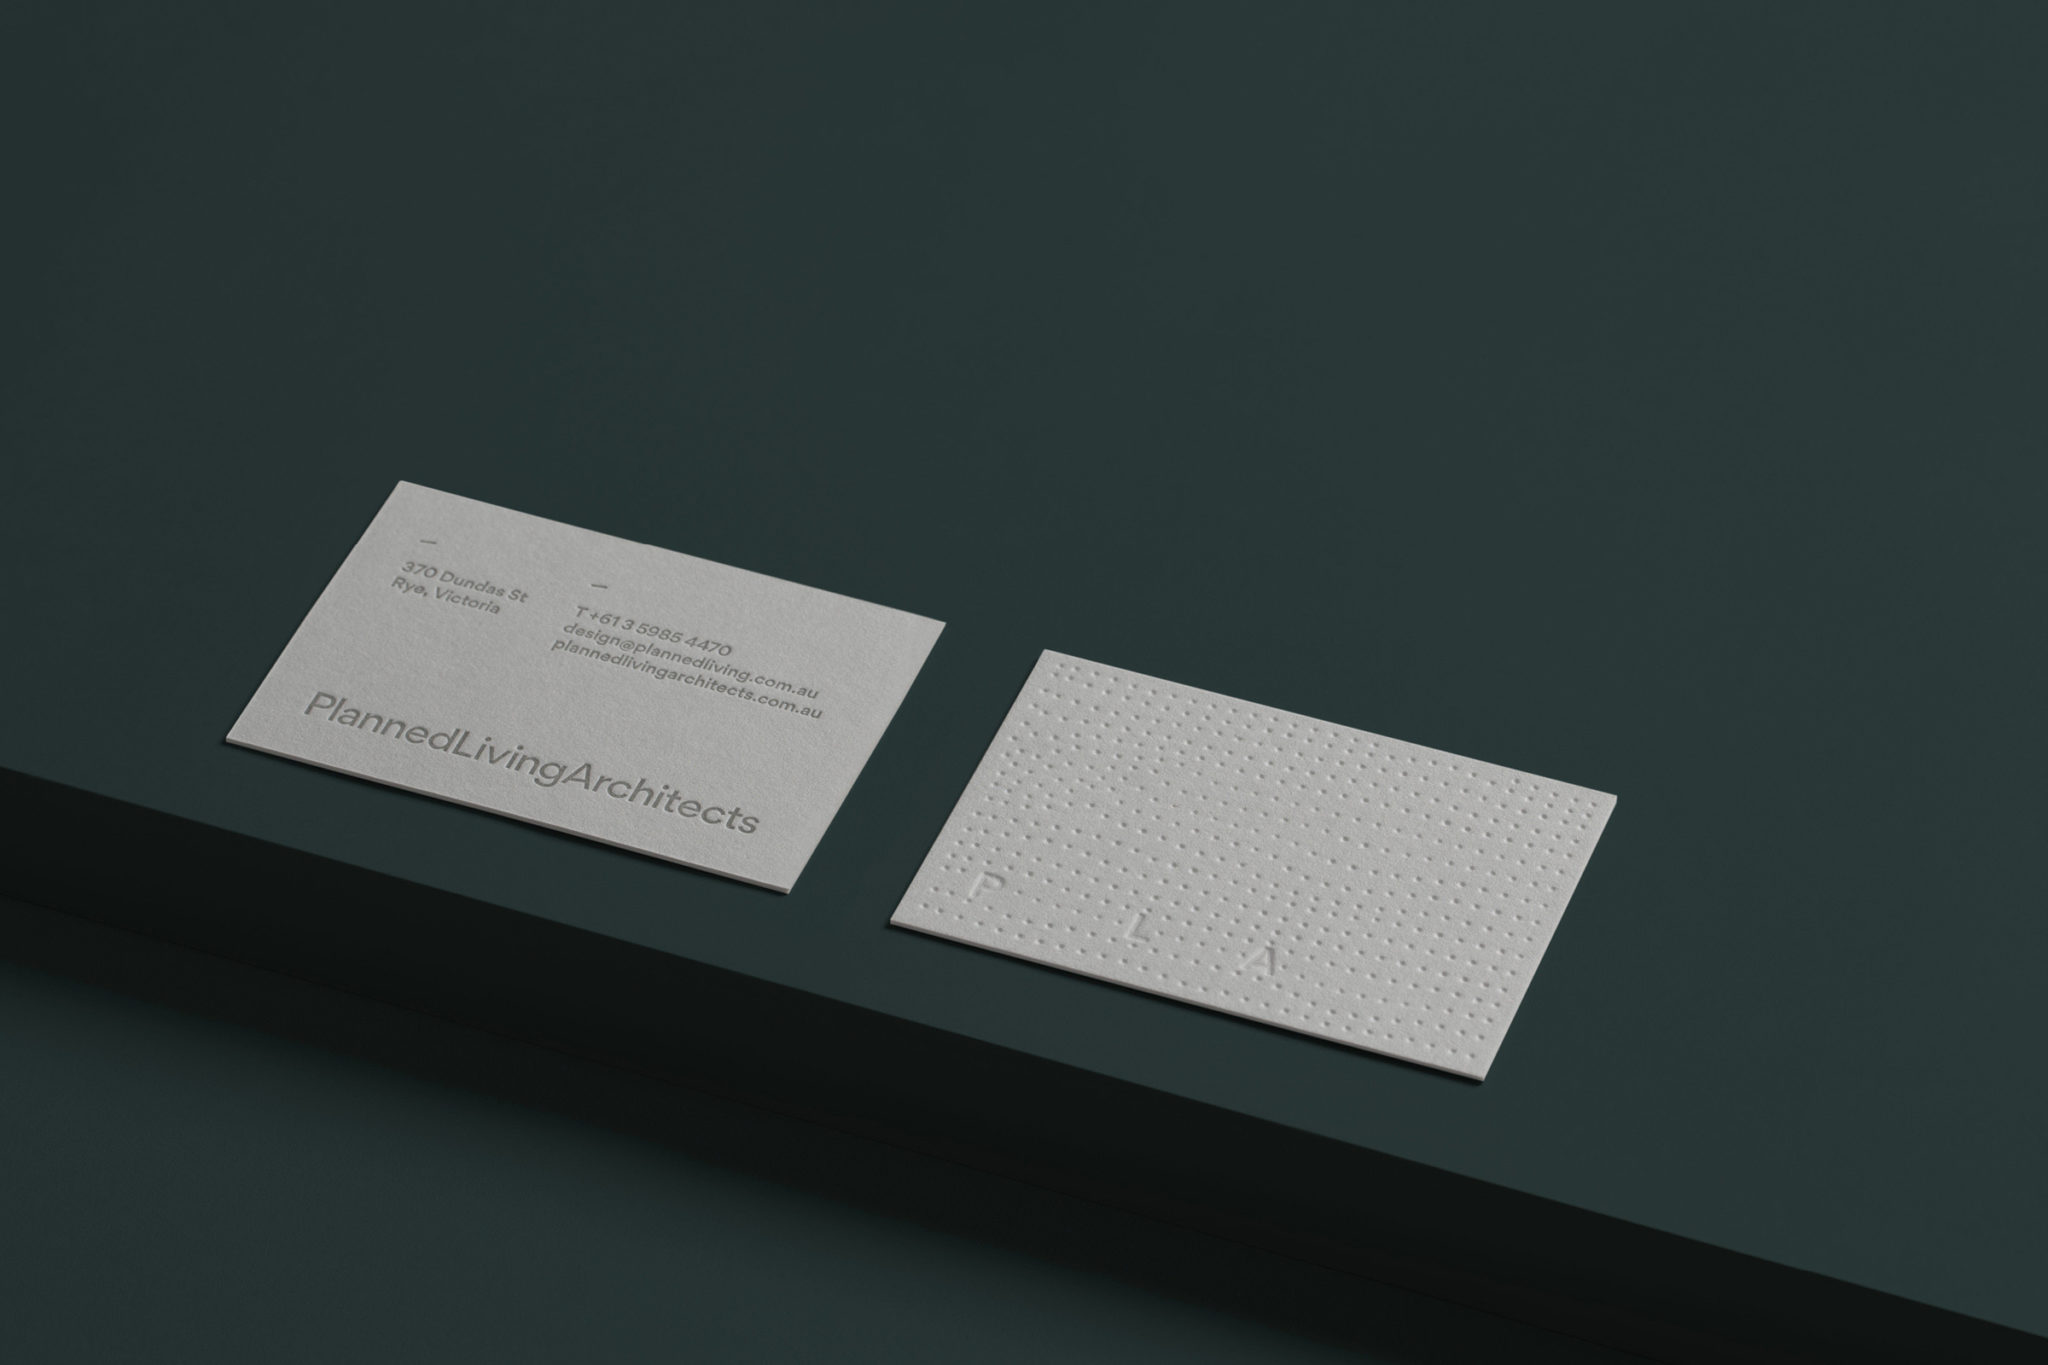 Premium Business Cards for PLA on Gmund New Grey